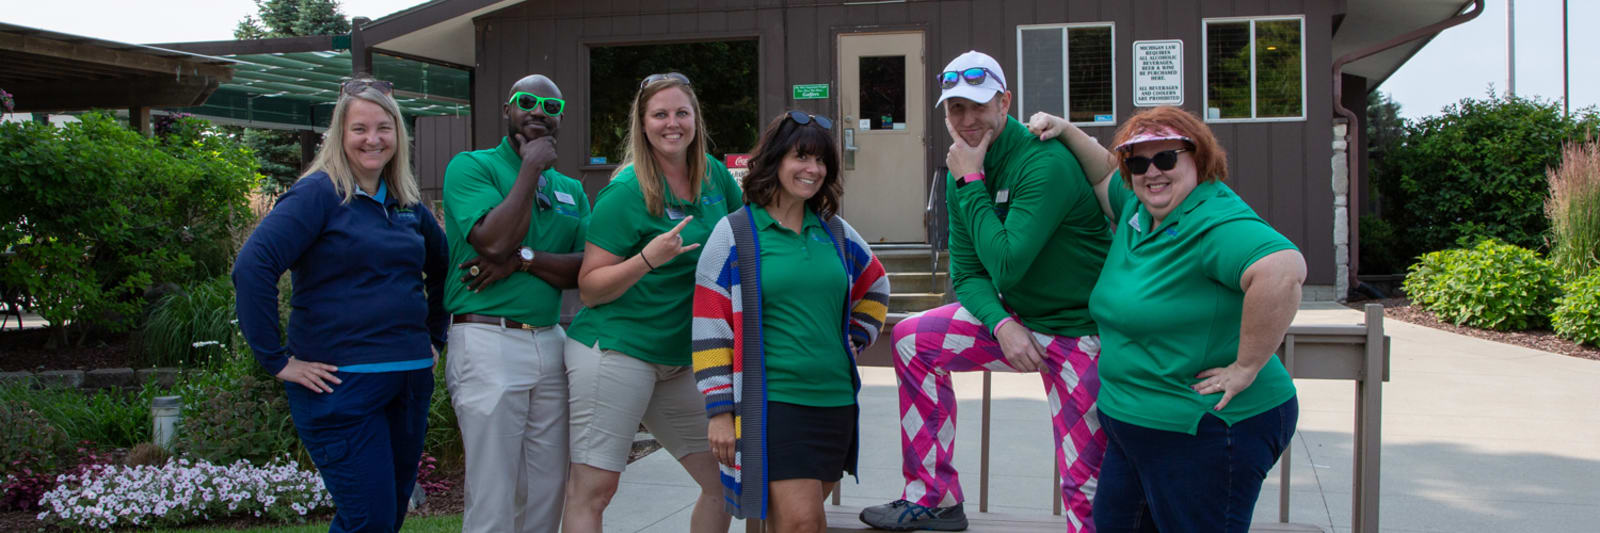 golf-outing-ambassadors.jpg